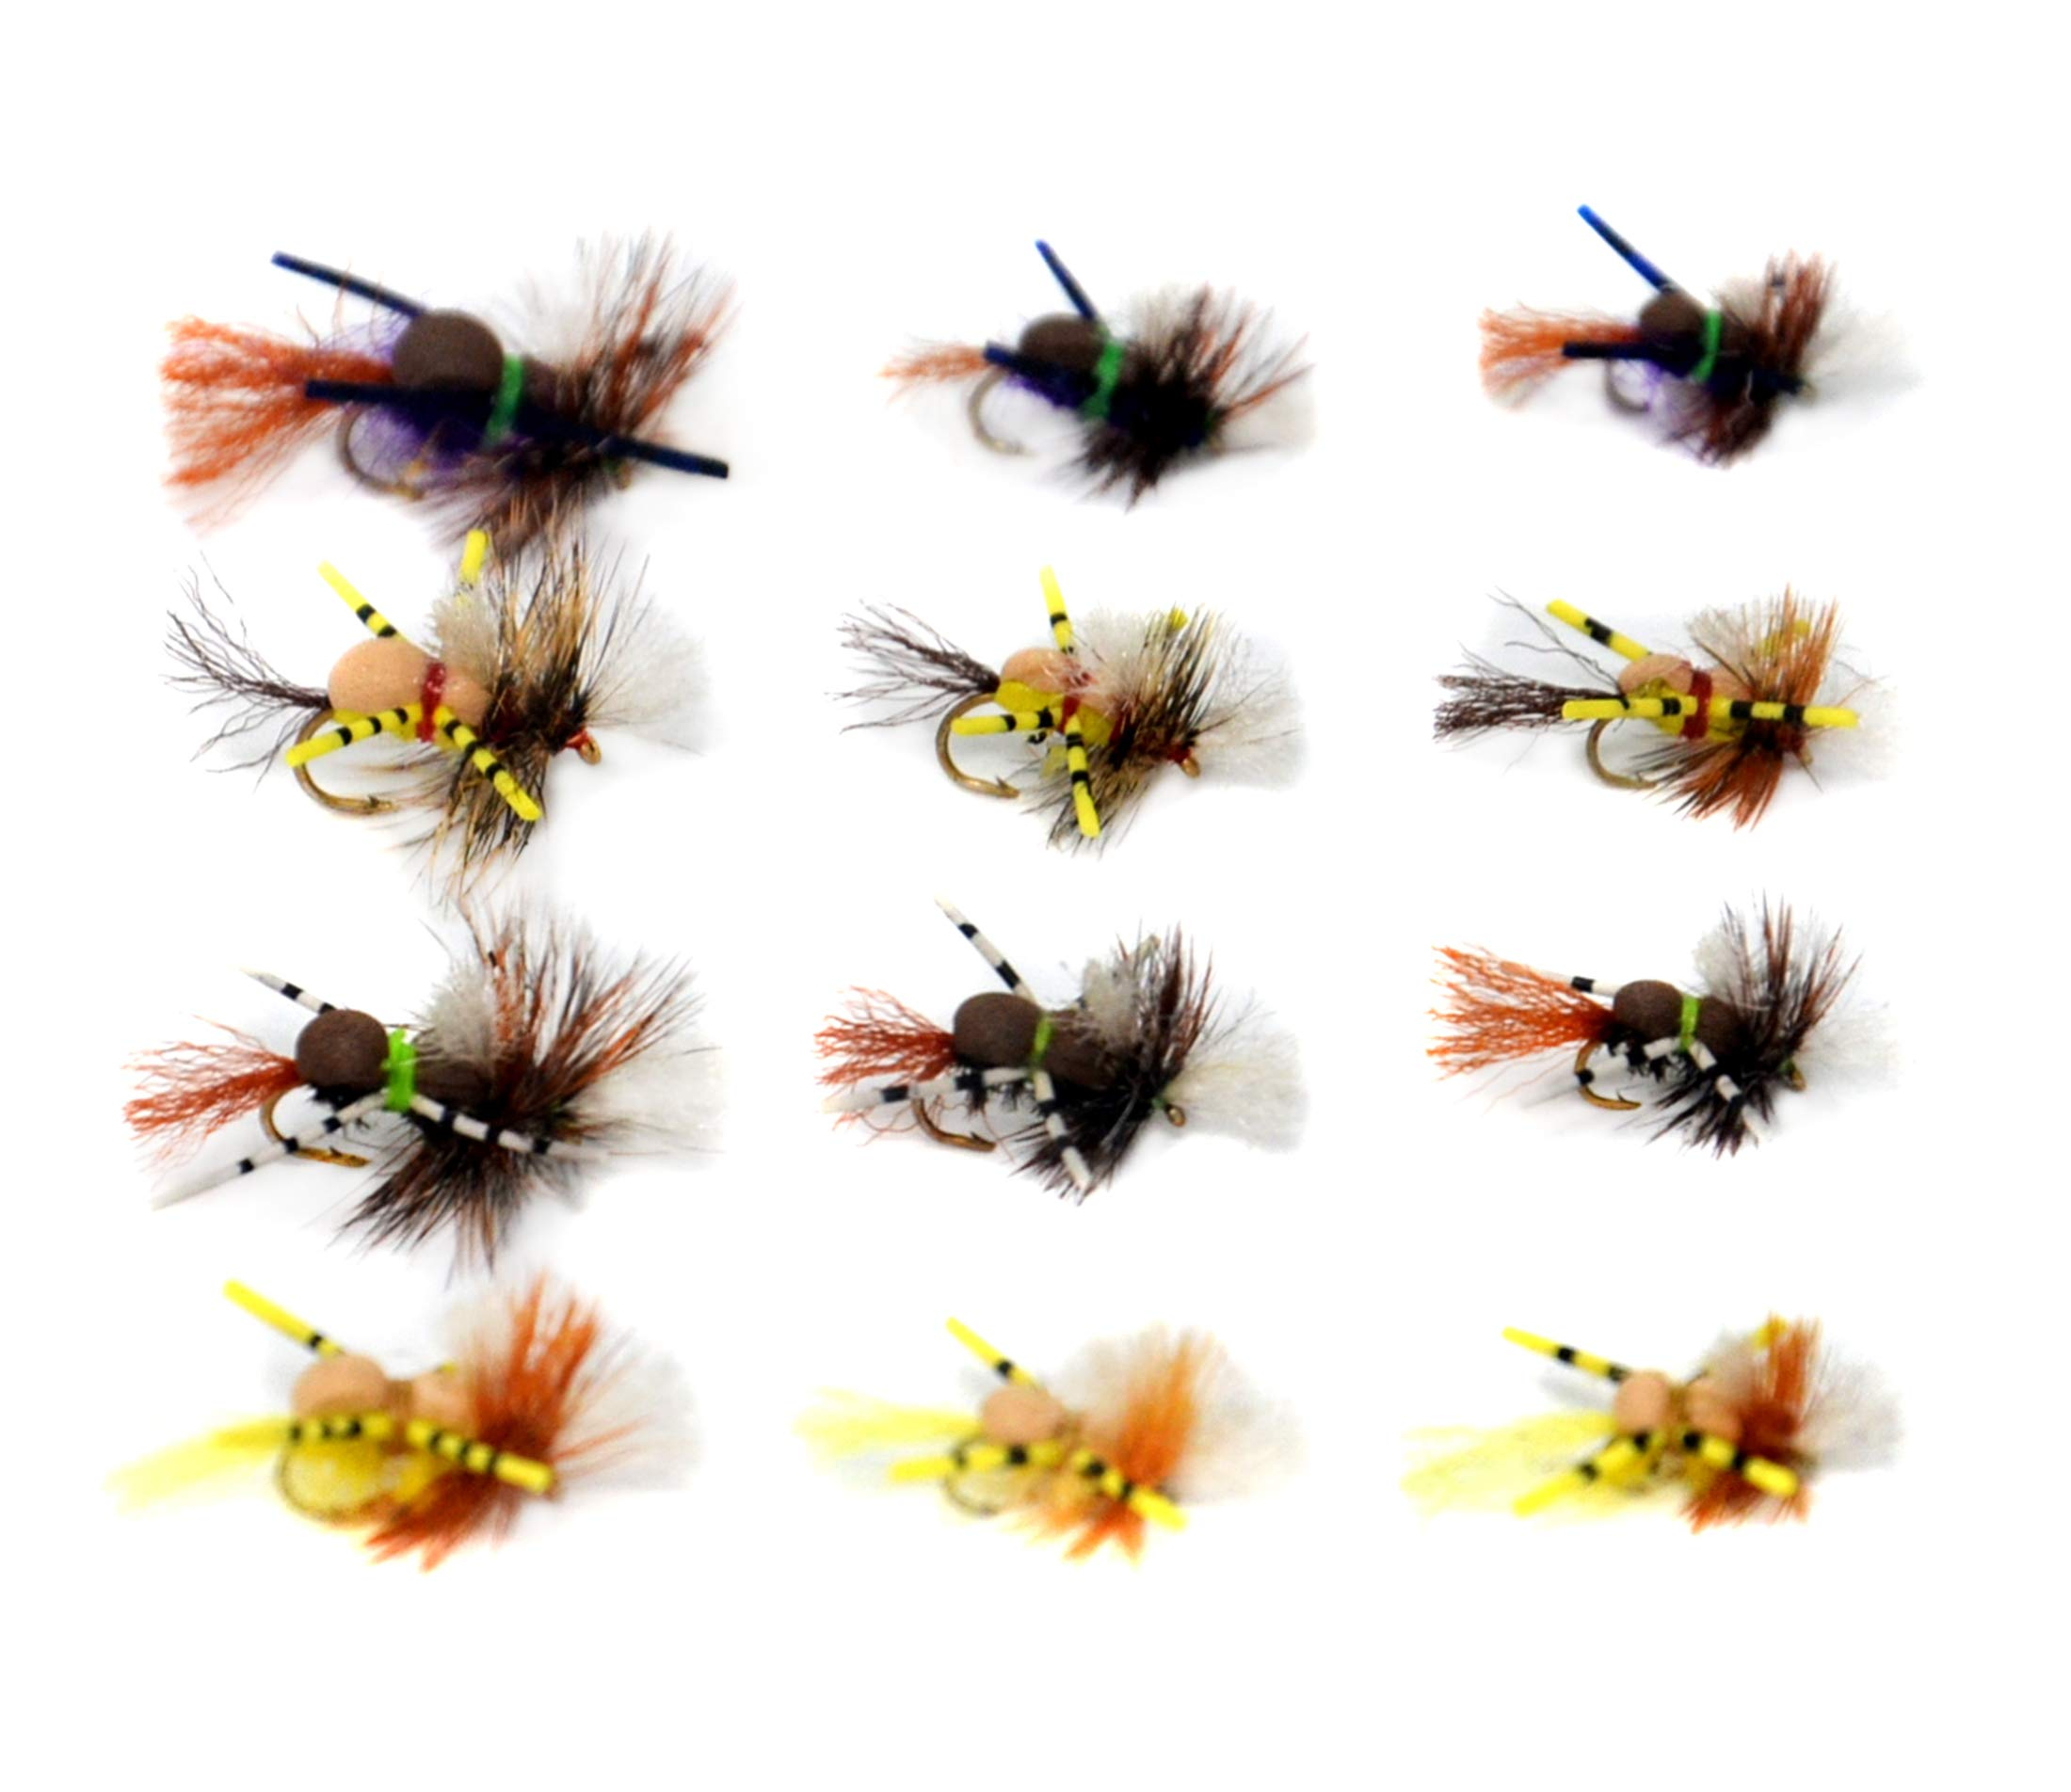 Outdoor Planet 12 Grumpy Frumpy Terrestrial Attractor Dry Flies Lure Assotment for Trout Fly Fishing Flies by Outdoor Planet